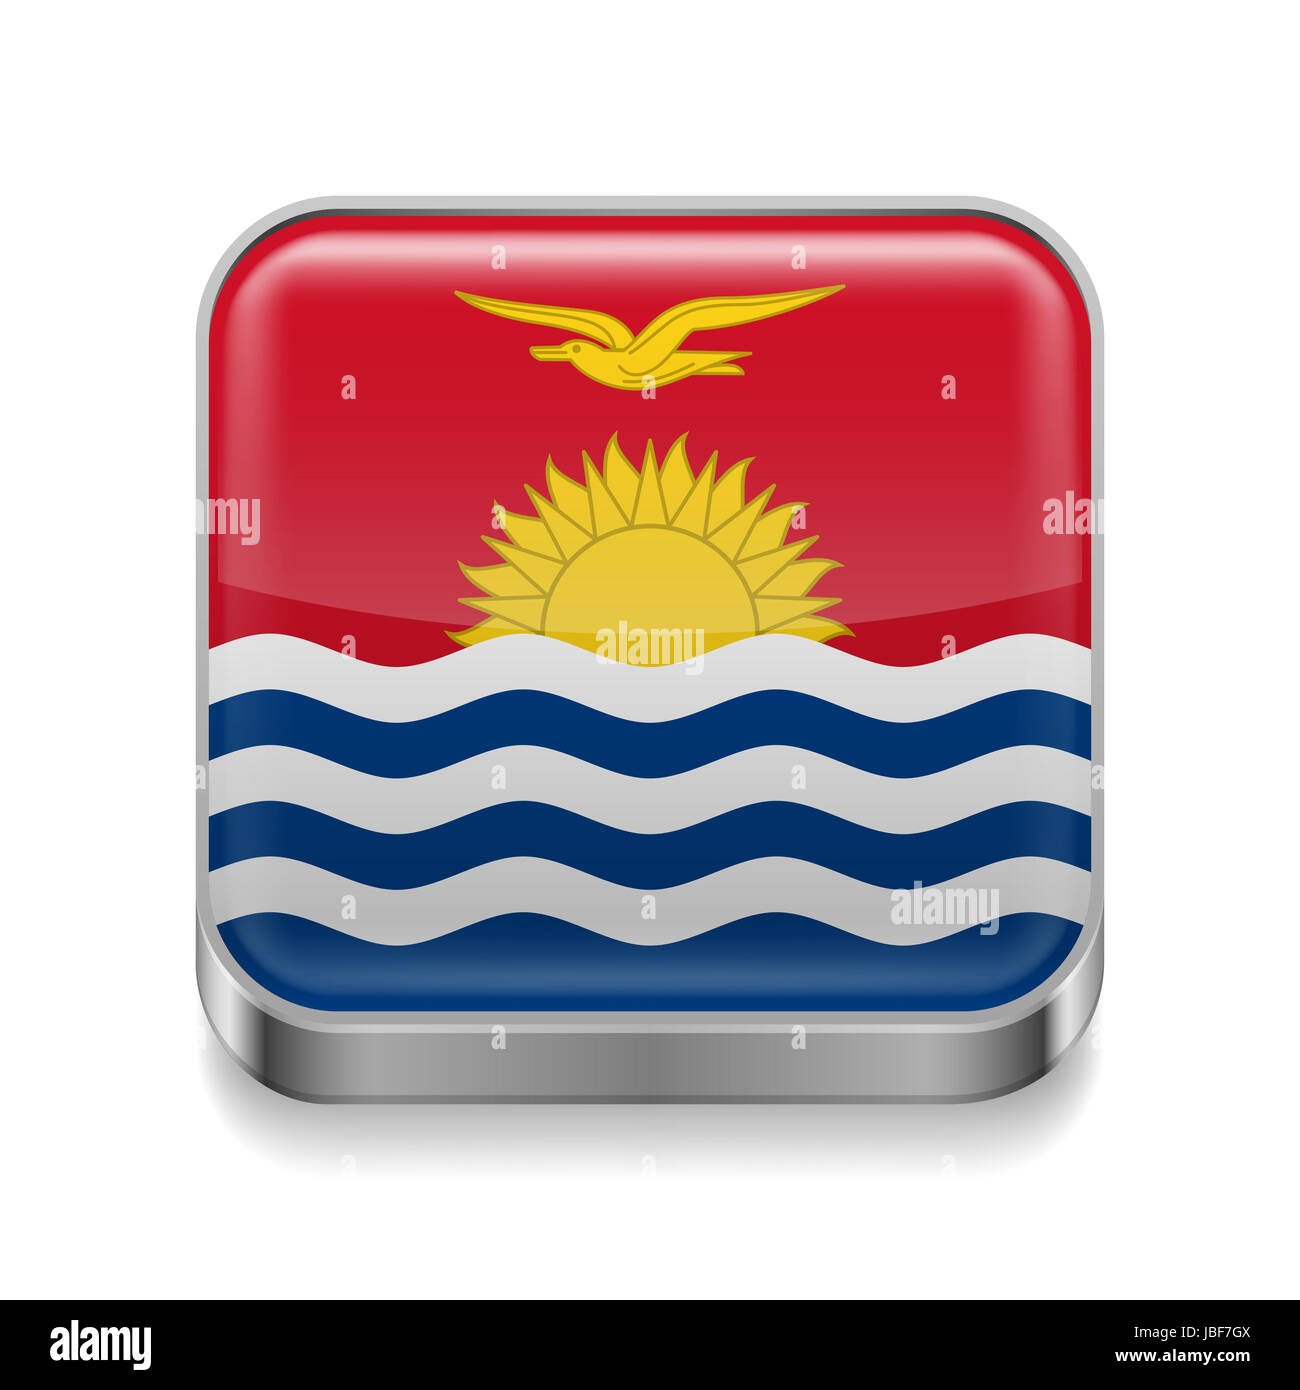 Metal square icon with flag colors of Kiribati - Stock Image